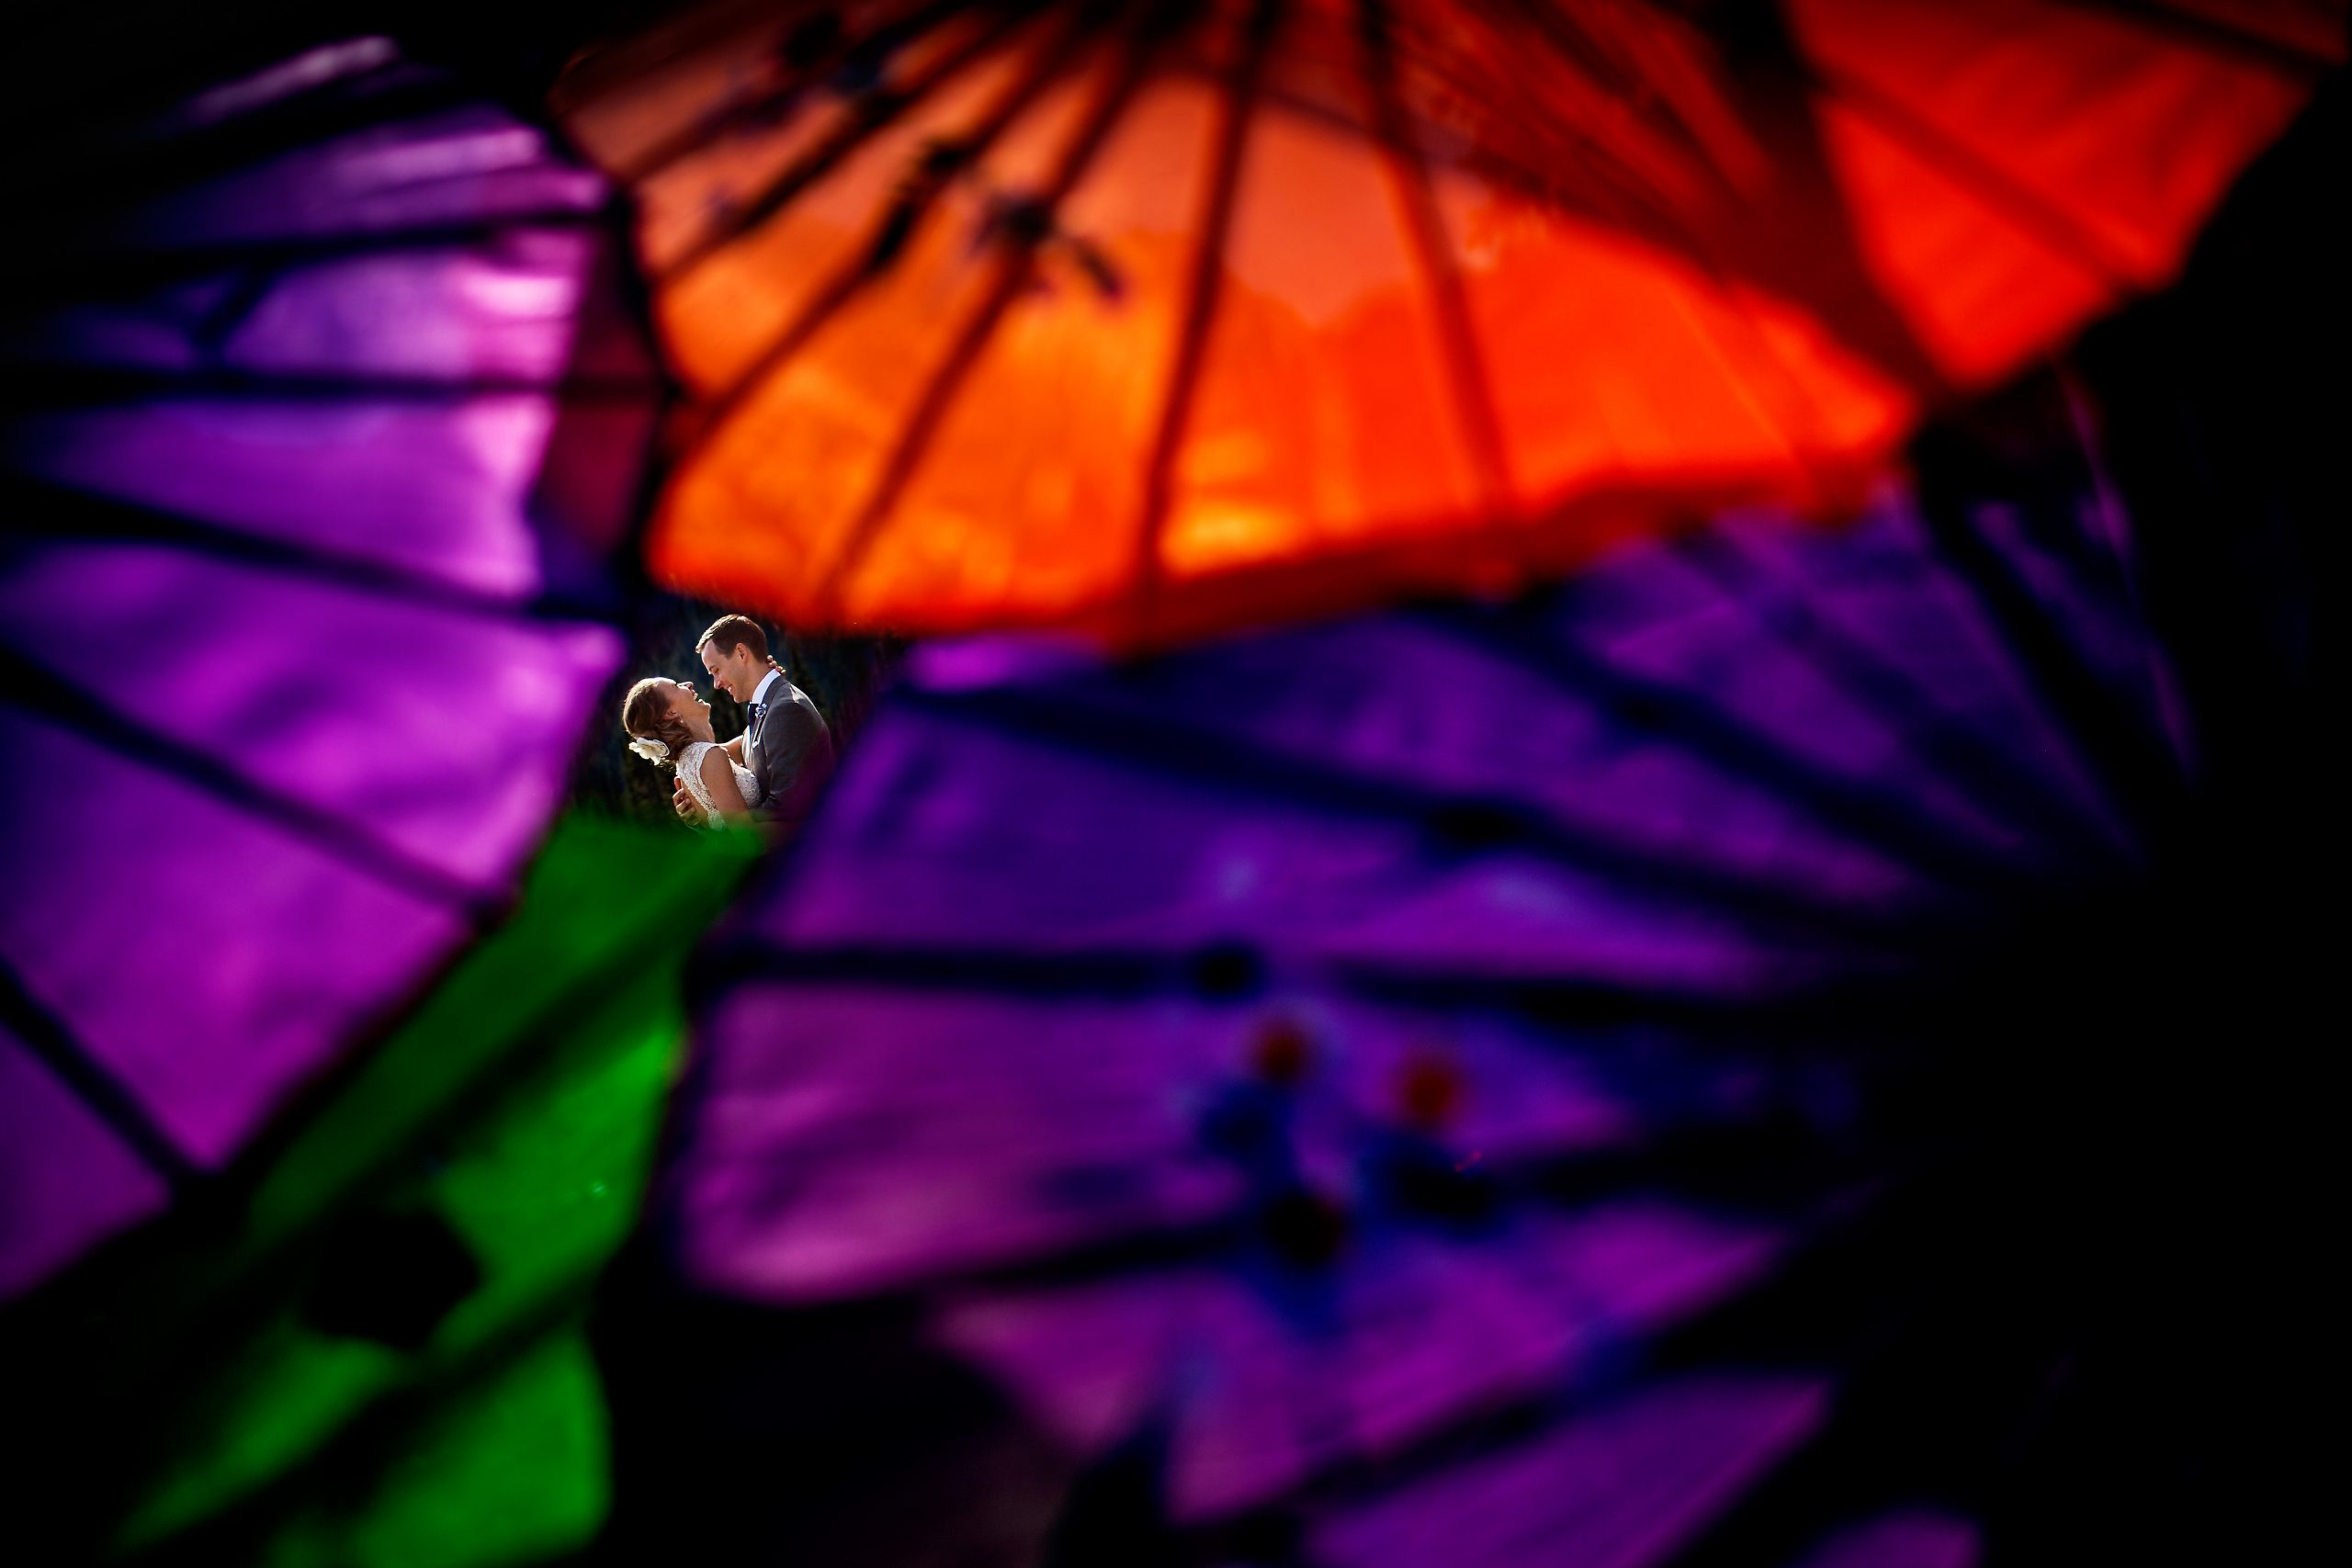 Through the opening of colorful umbrellas a groom holds the bride